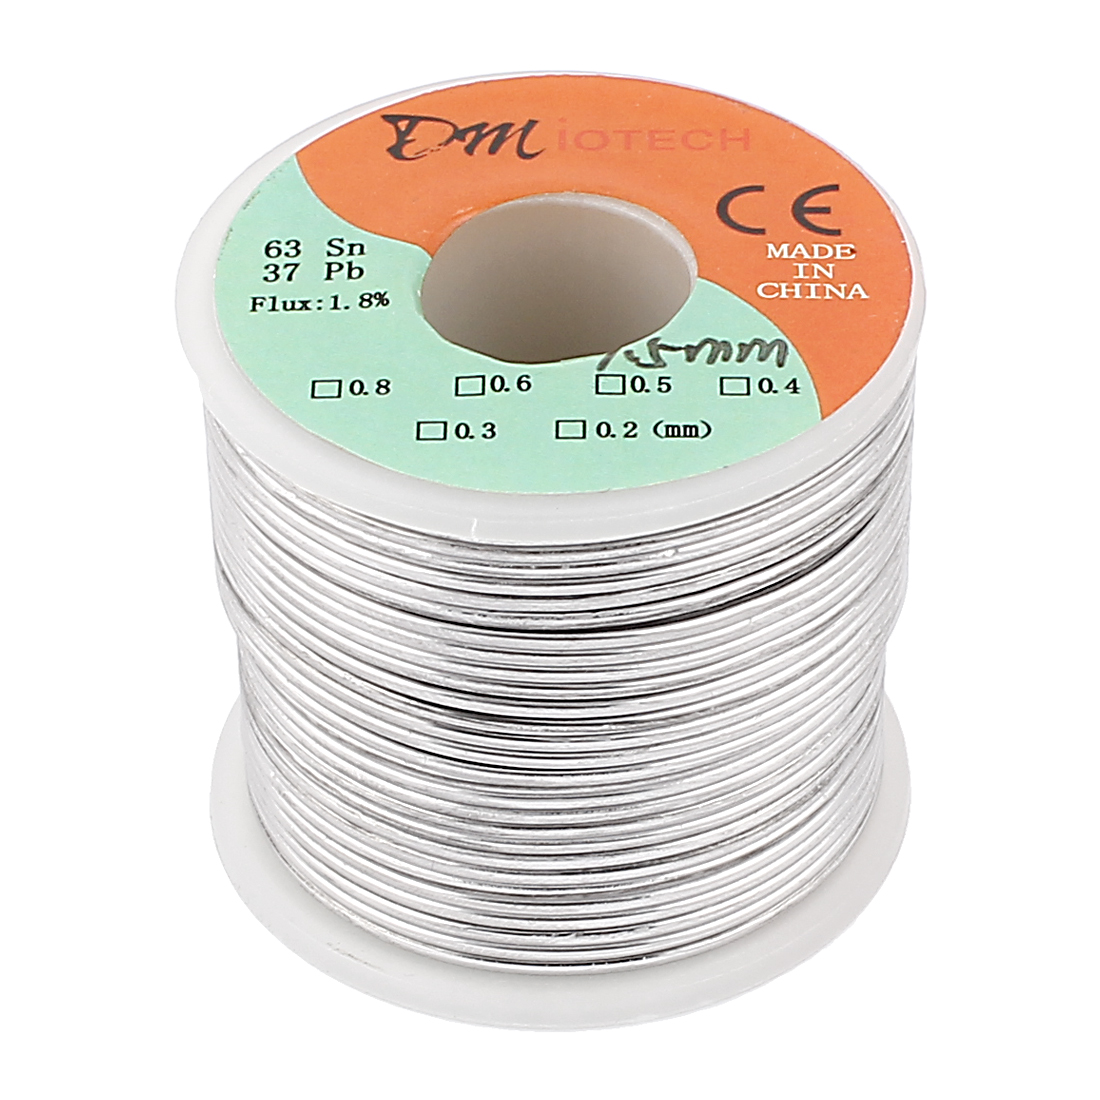 1.5mm Rosin Core Solder Tin Lead Solder Wire 63/37 for Electrical Soldering 400g